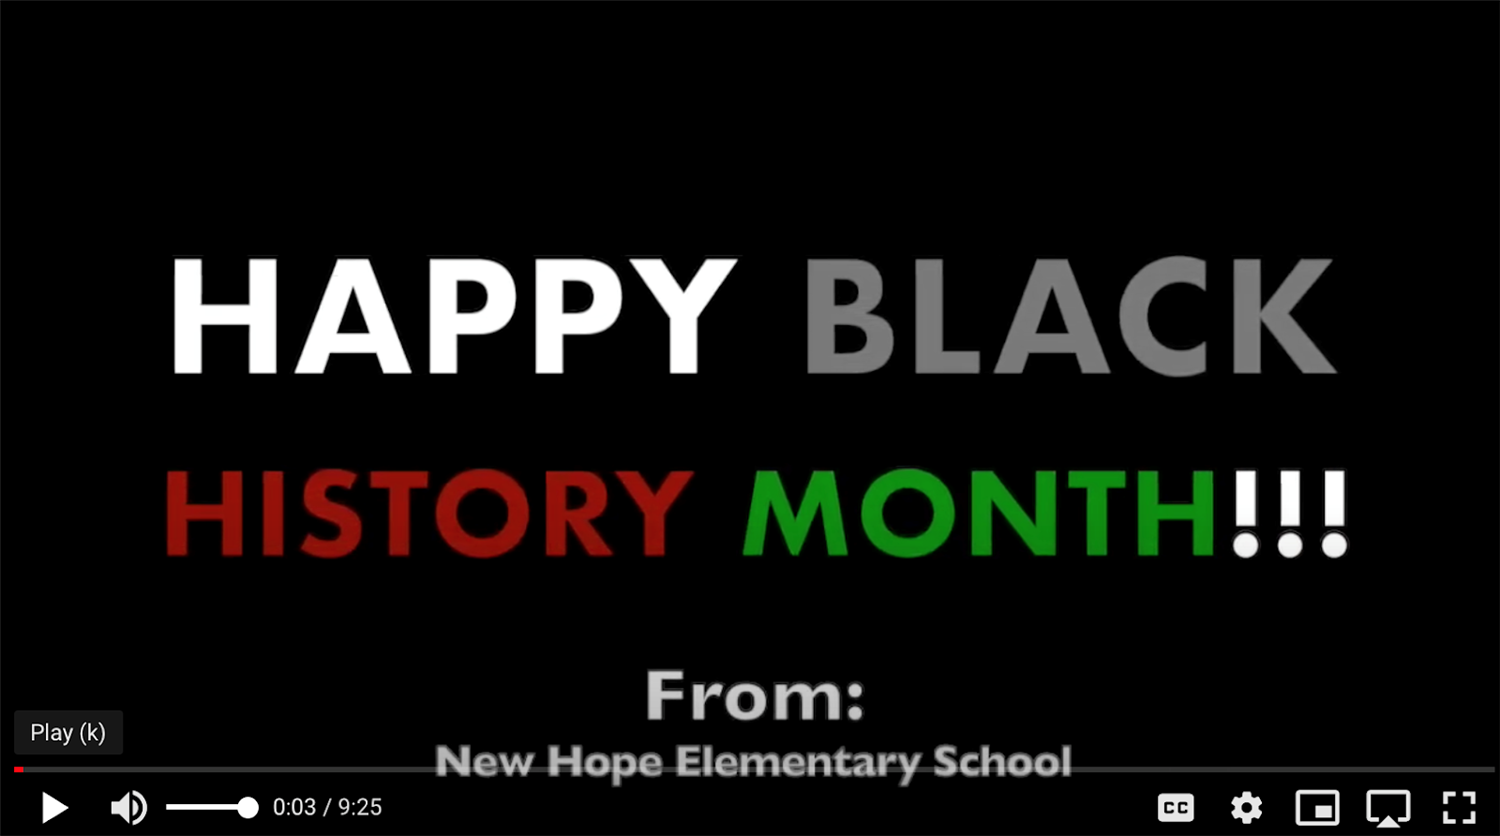 Screen shot from New Hope Elementary Black History Month Video